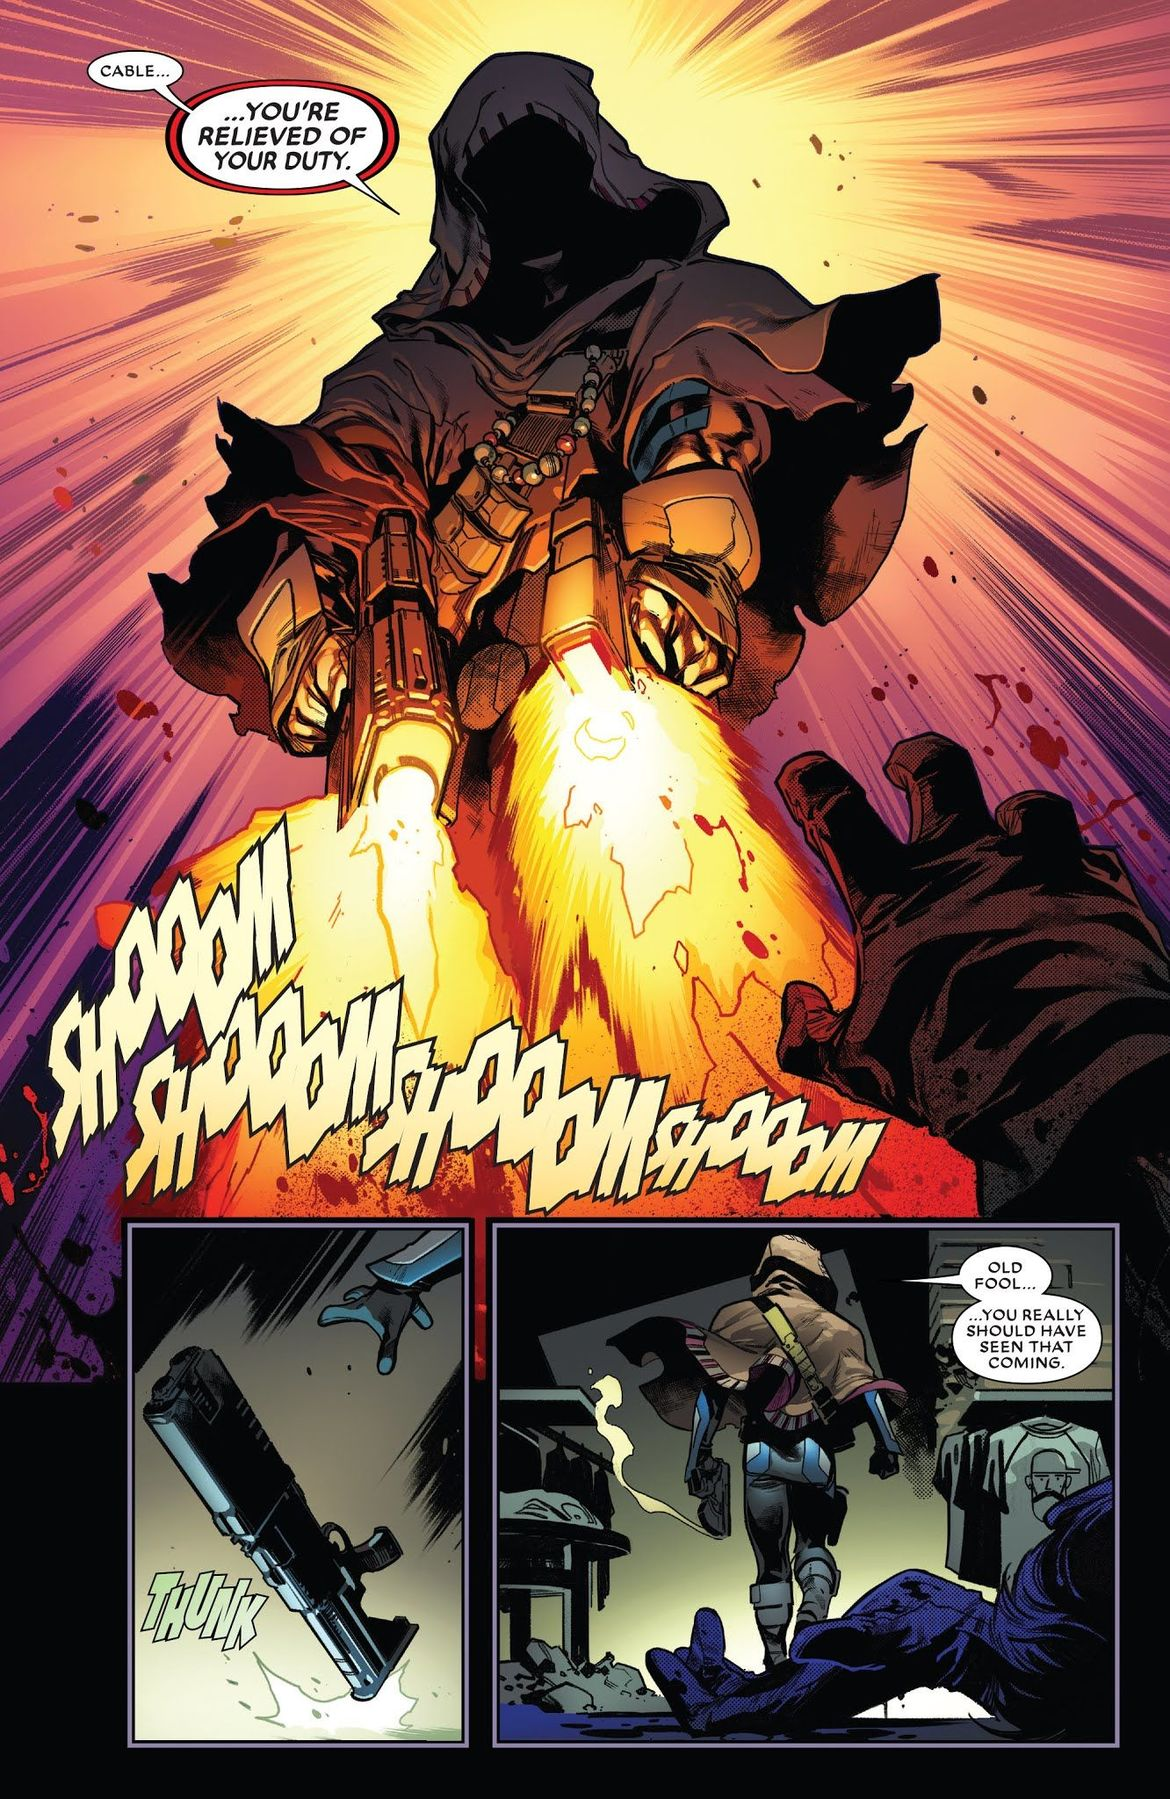 Extermination page